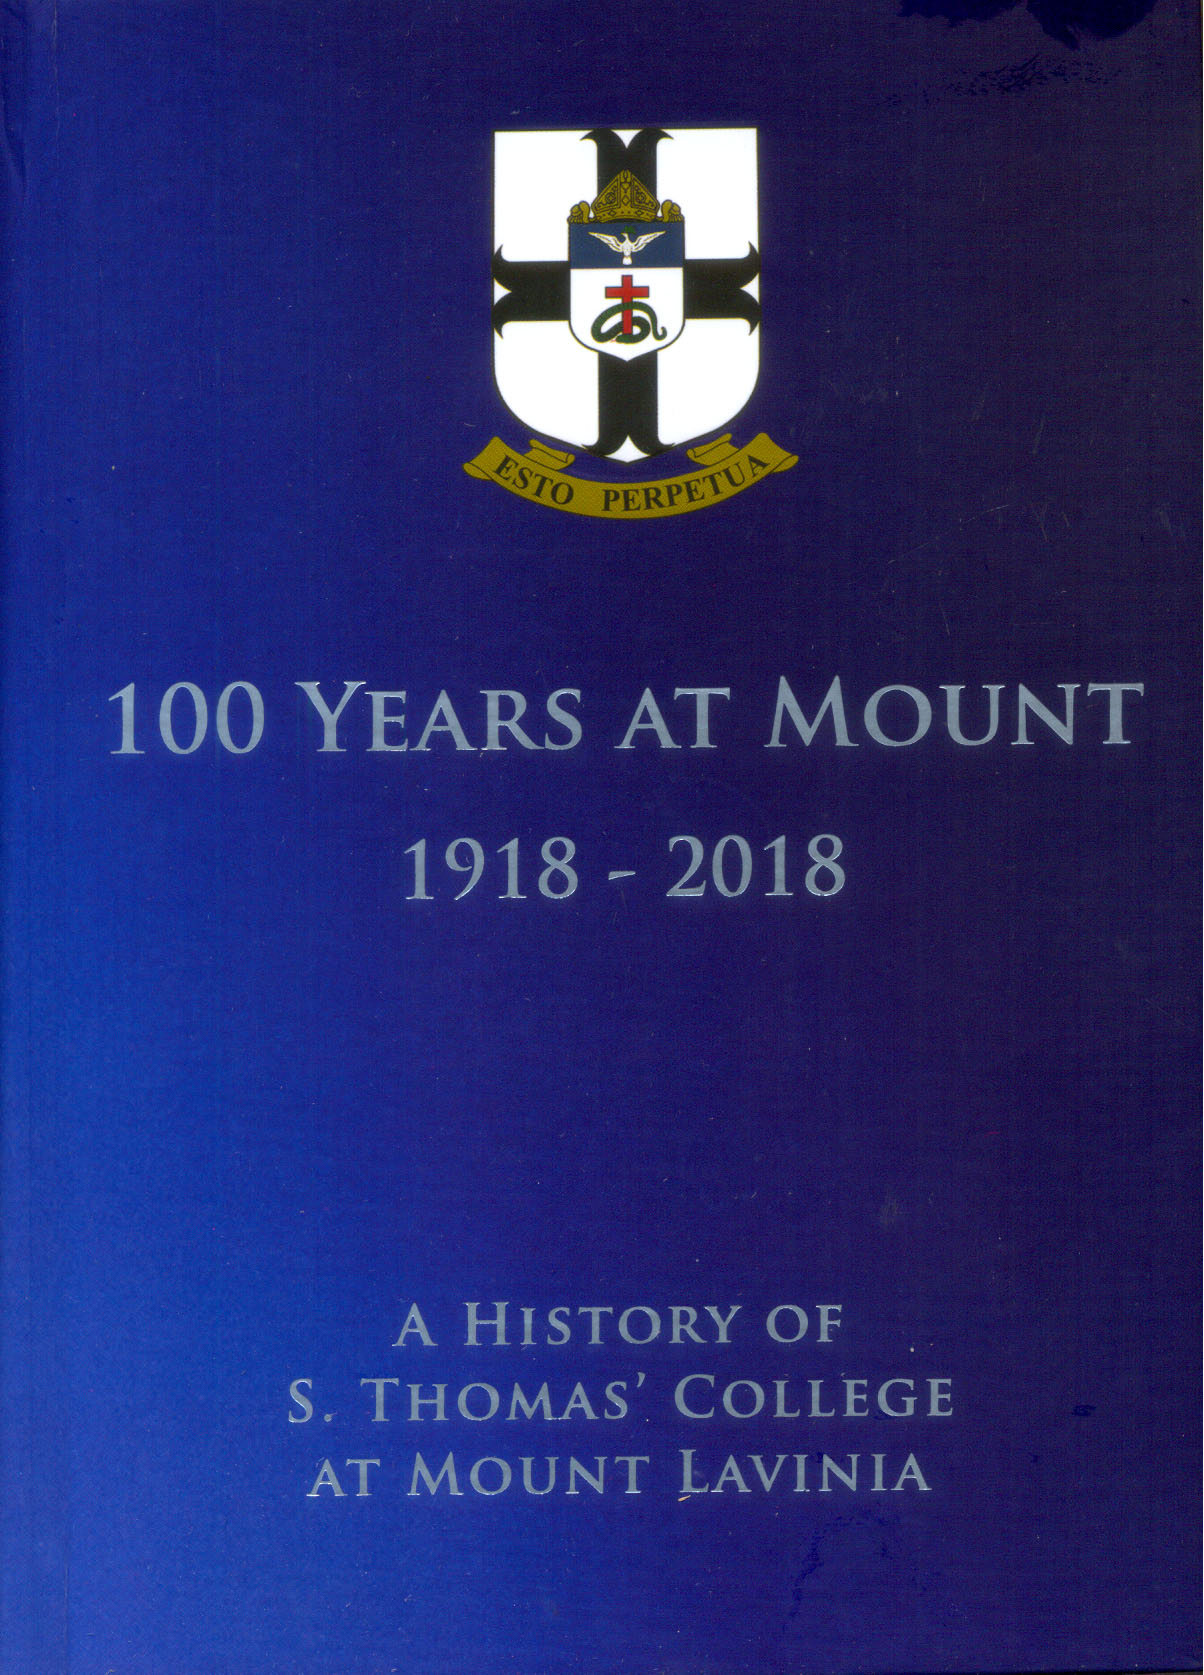 100 Years At Mount 1918 - 2018